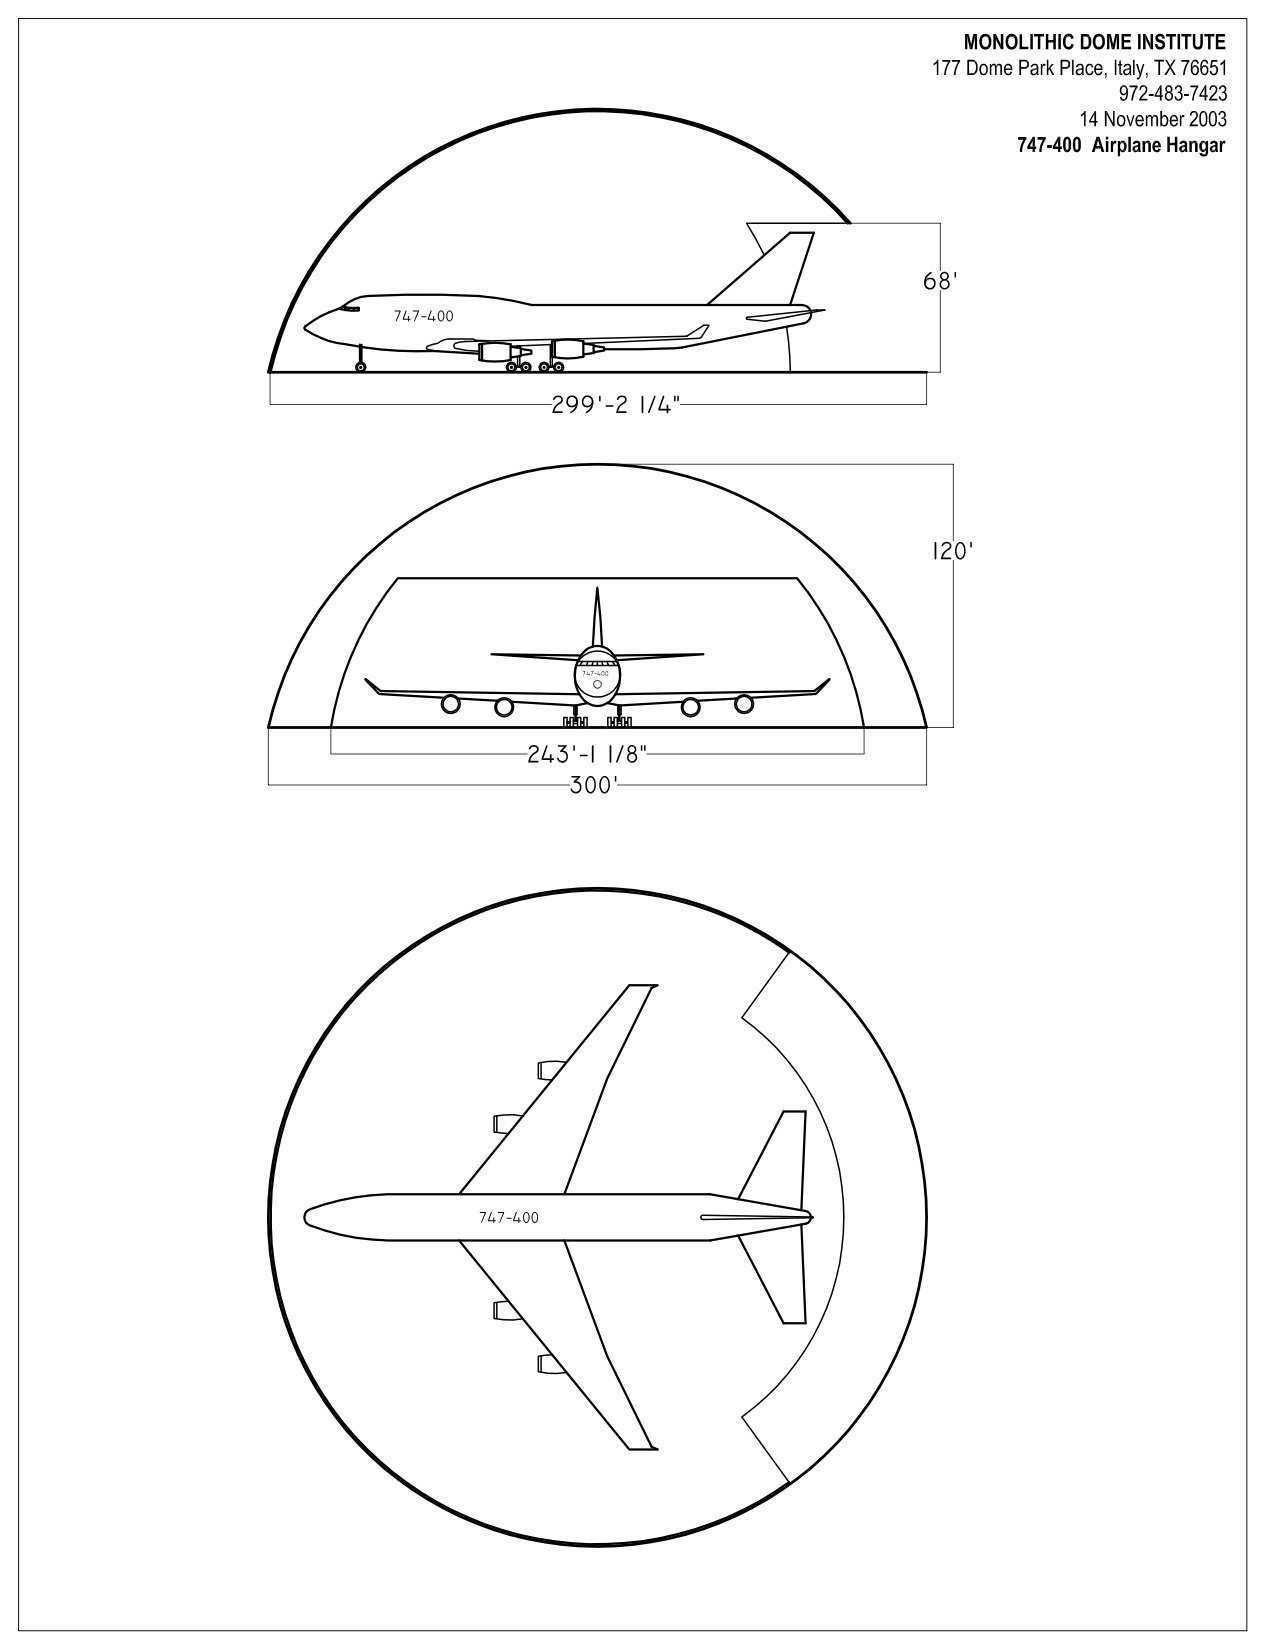 Monolithic Dome Airplane Hangars and the Invention of the